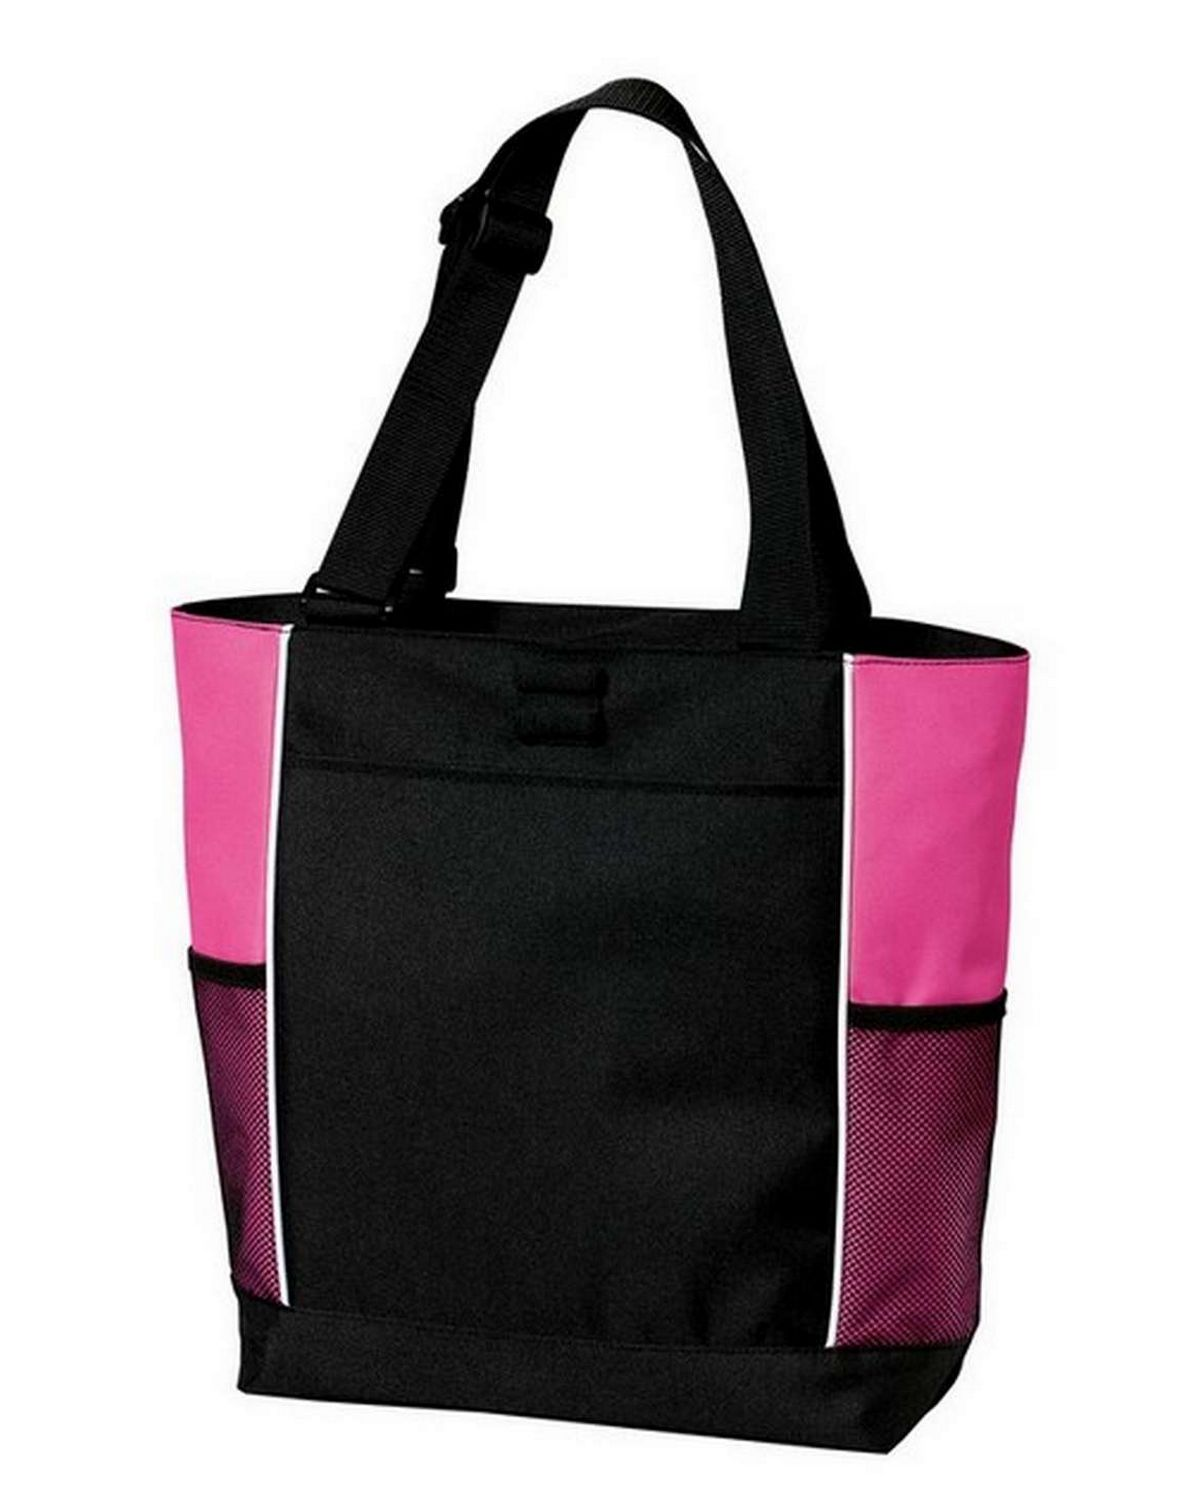 Port Authority B5160 Improved Panel Tote